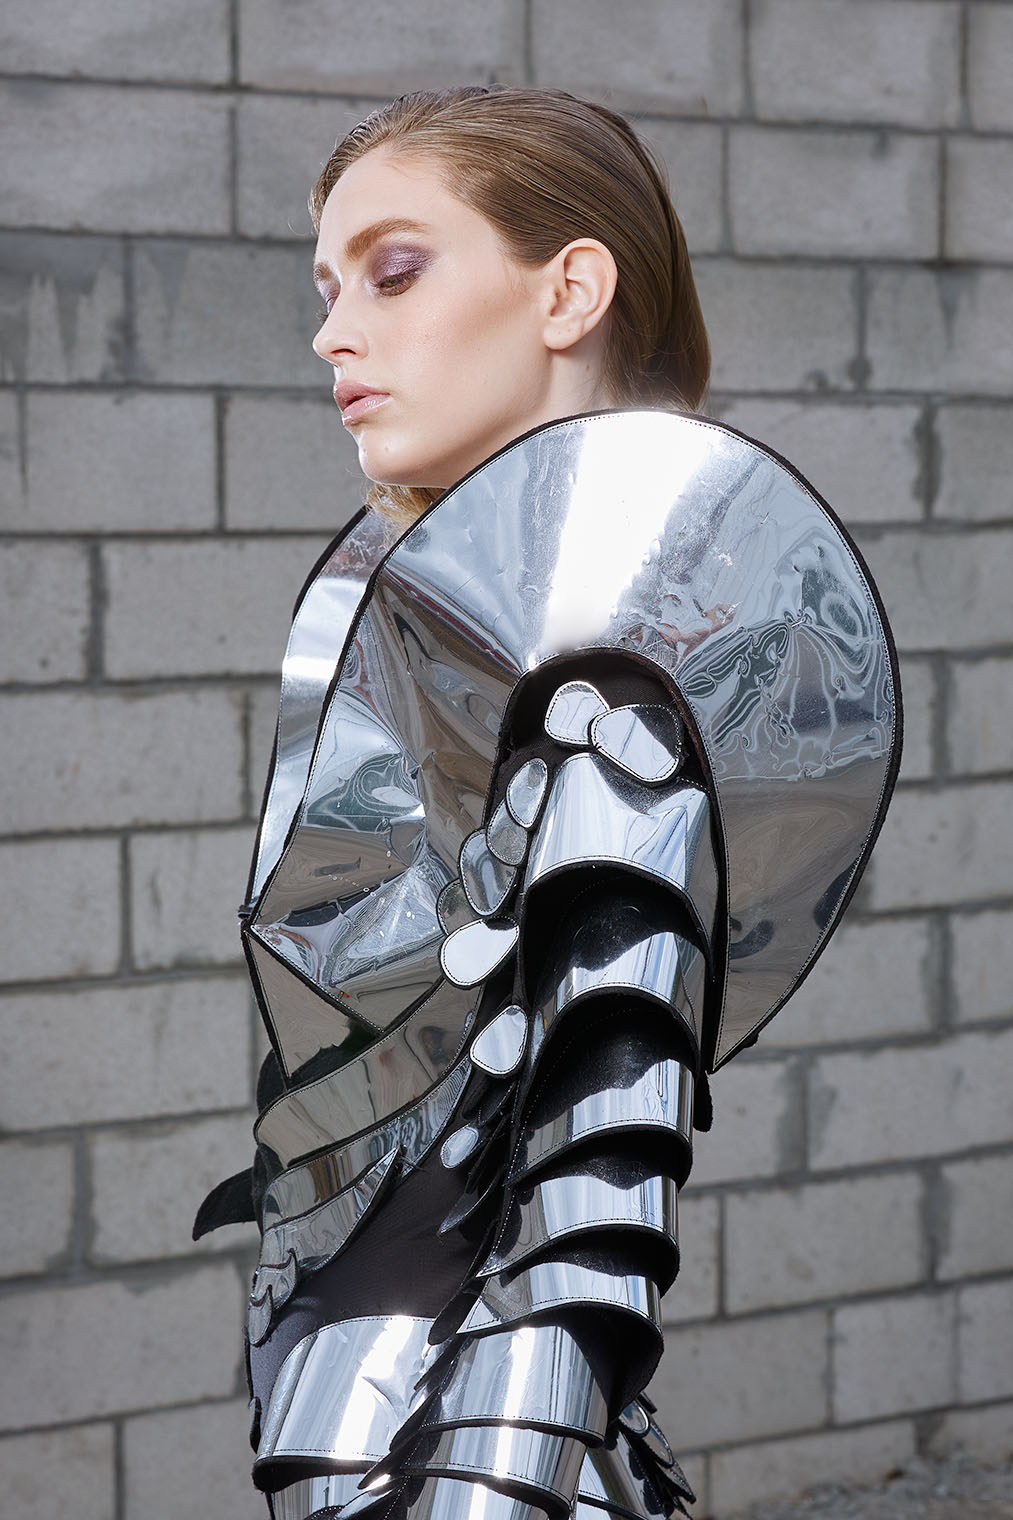 woman in silver clothing - best fashion photographers los angeles